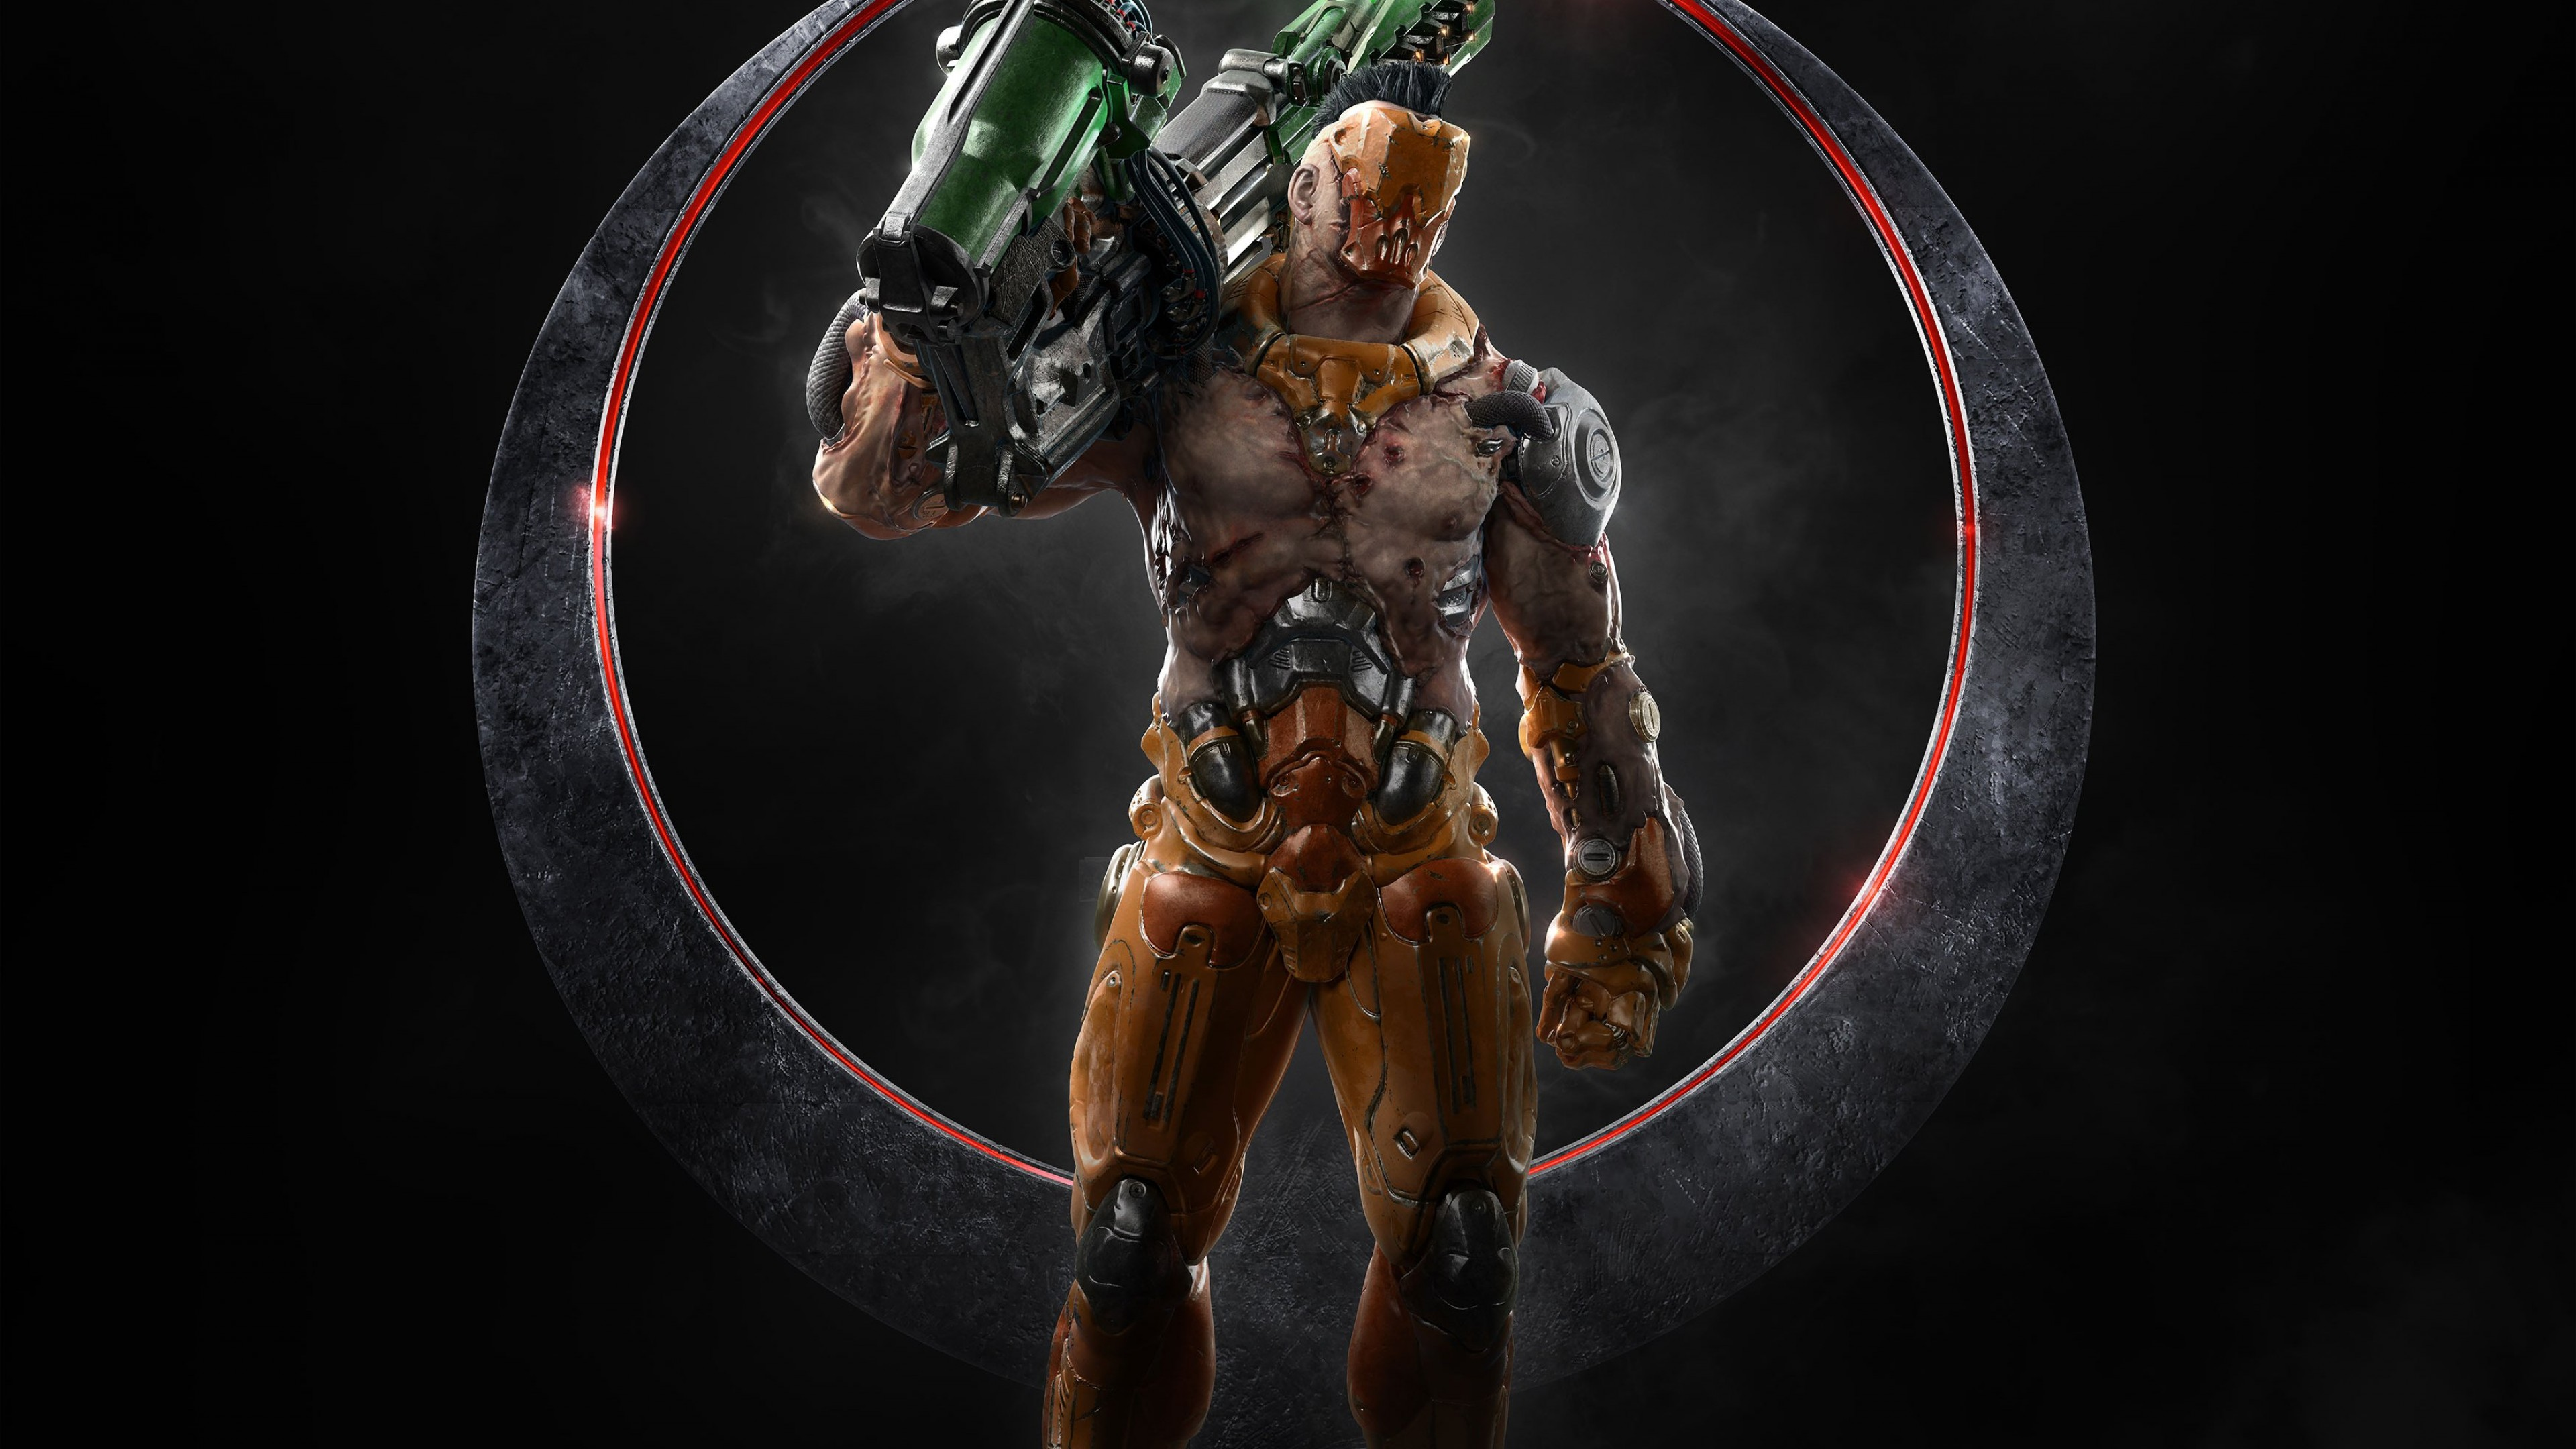 Wallpaper Quake Champions, shooter, Visor, best games, pc